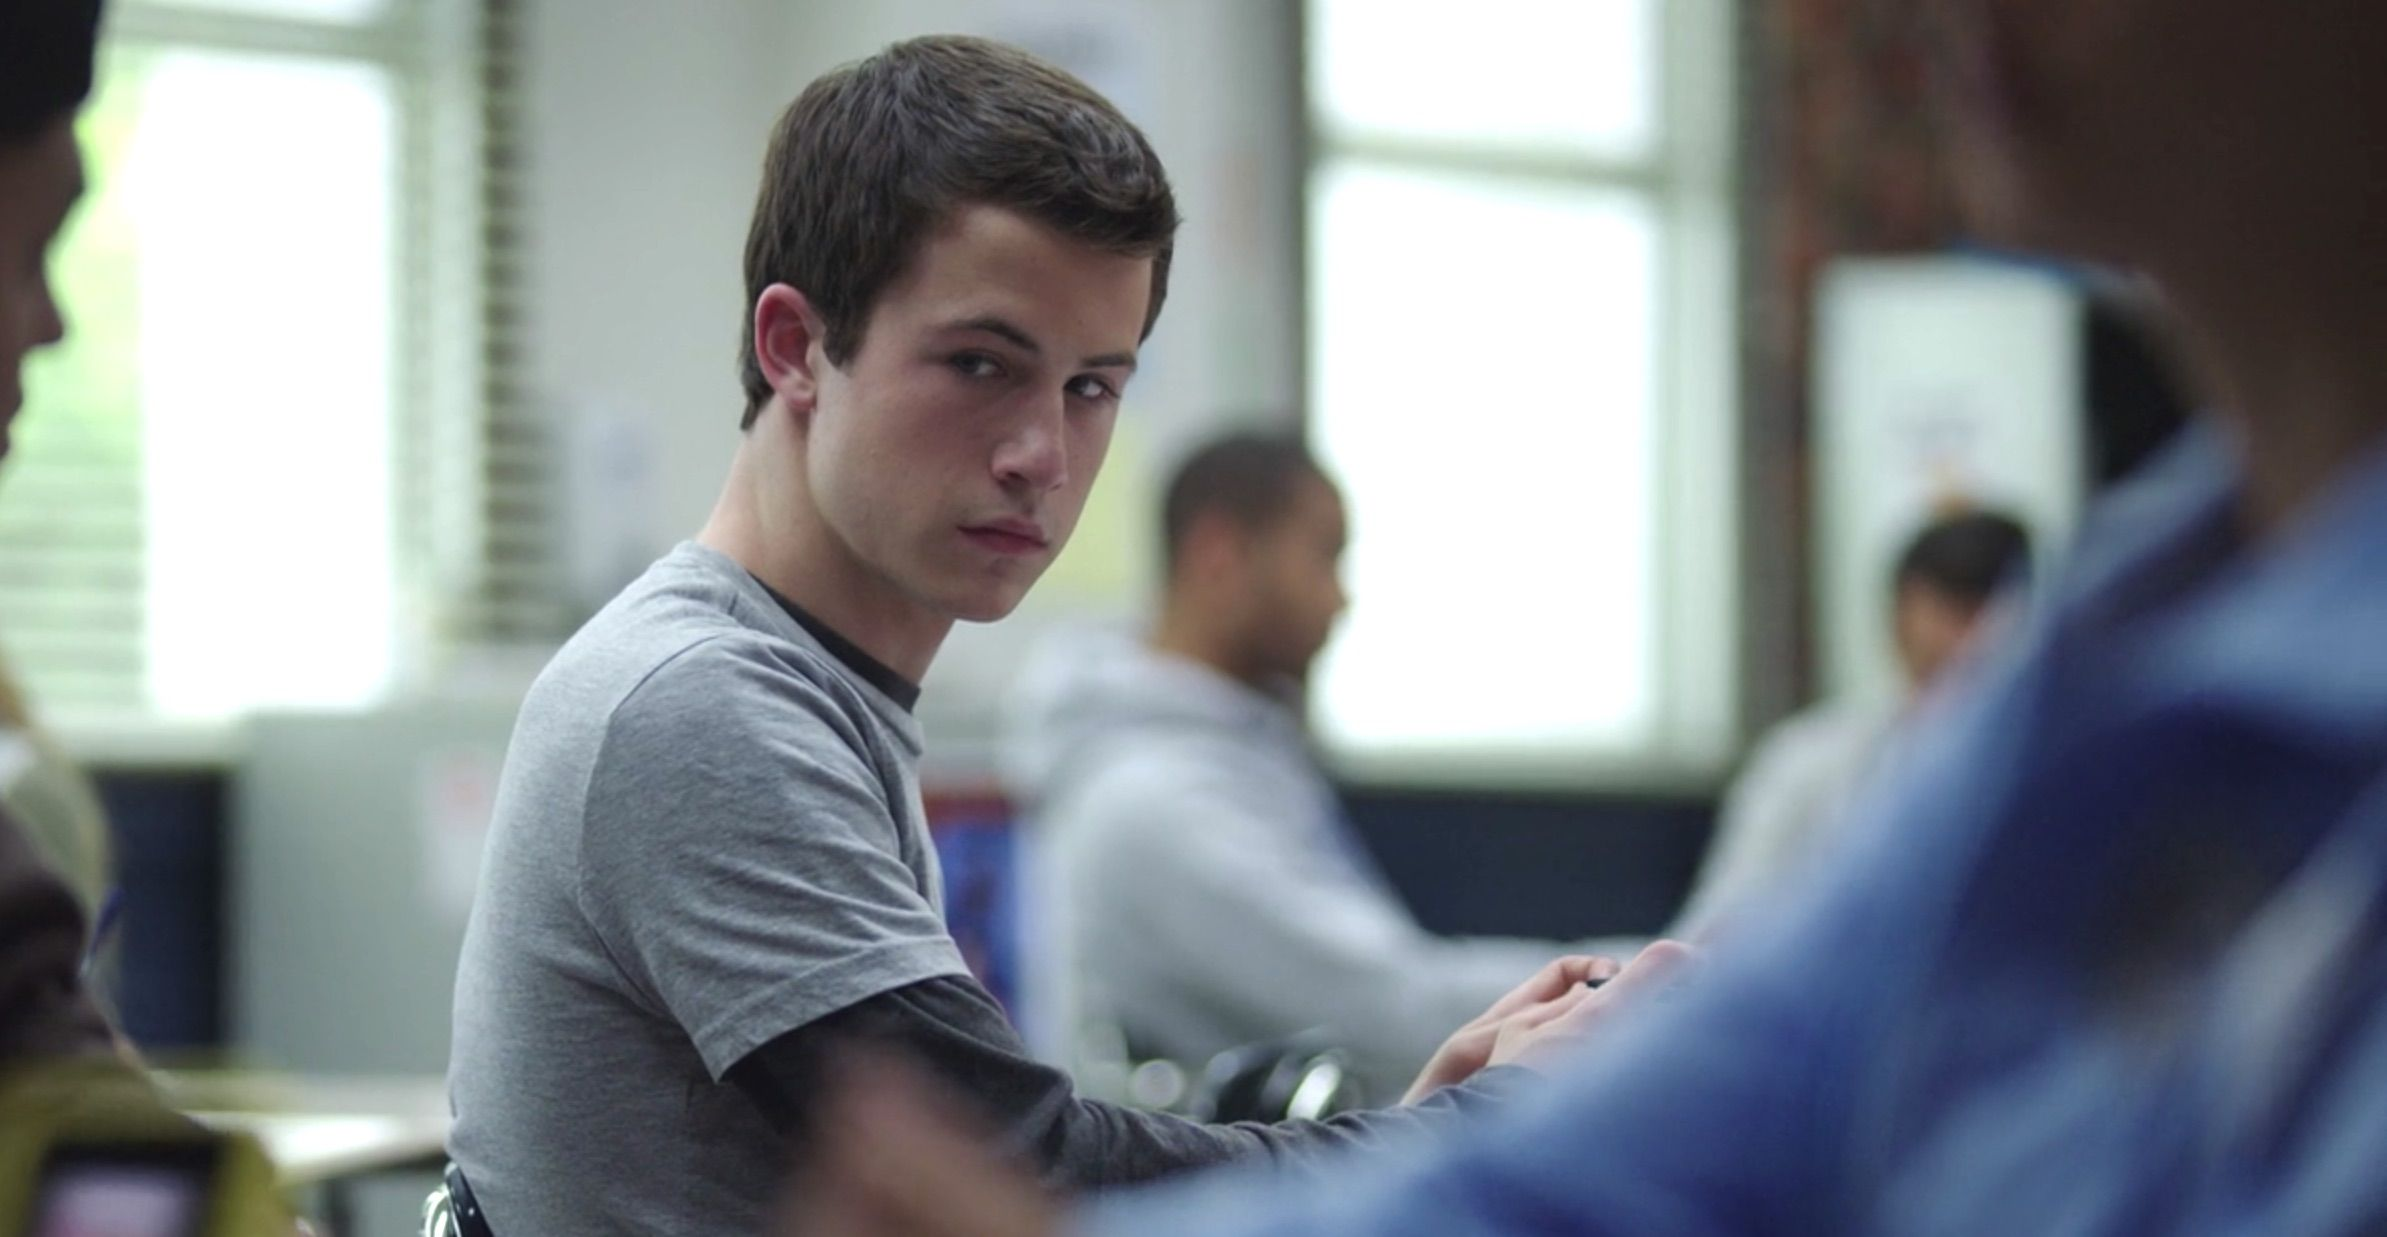 13 Reasons Why season 4 adds key character connected to Clay Jensen